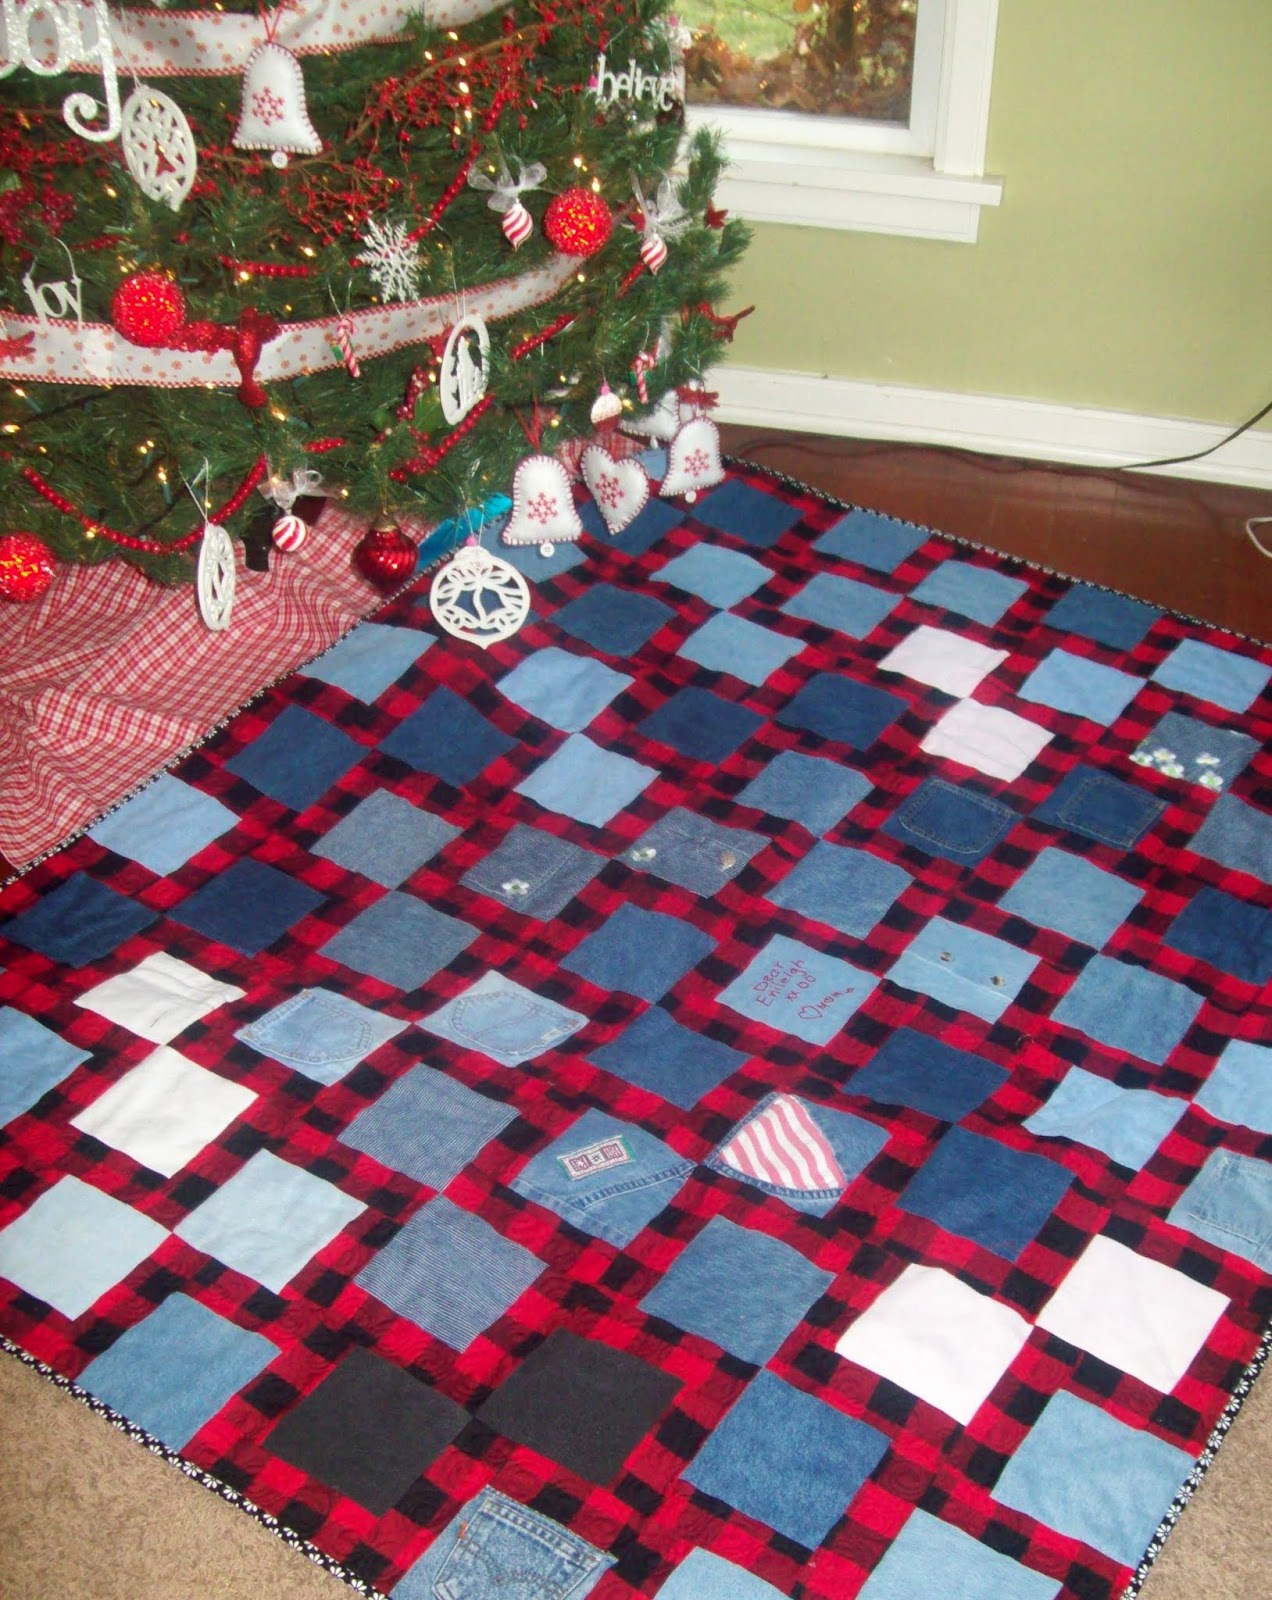 denim new pinterest images on quilt ideas of quilts jeans old best